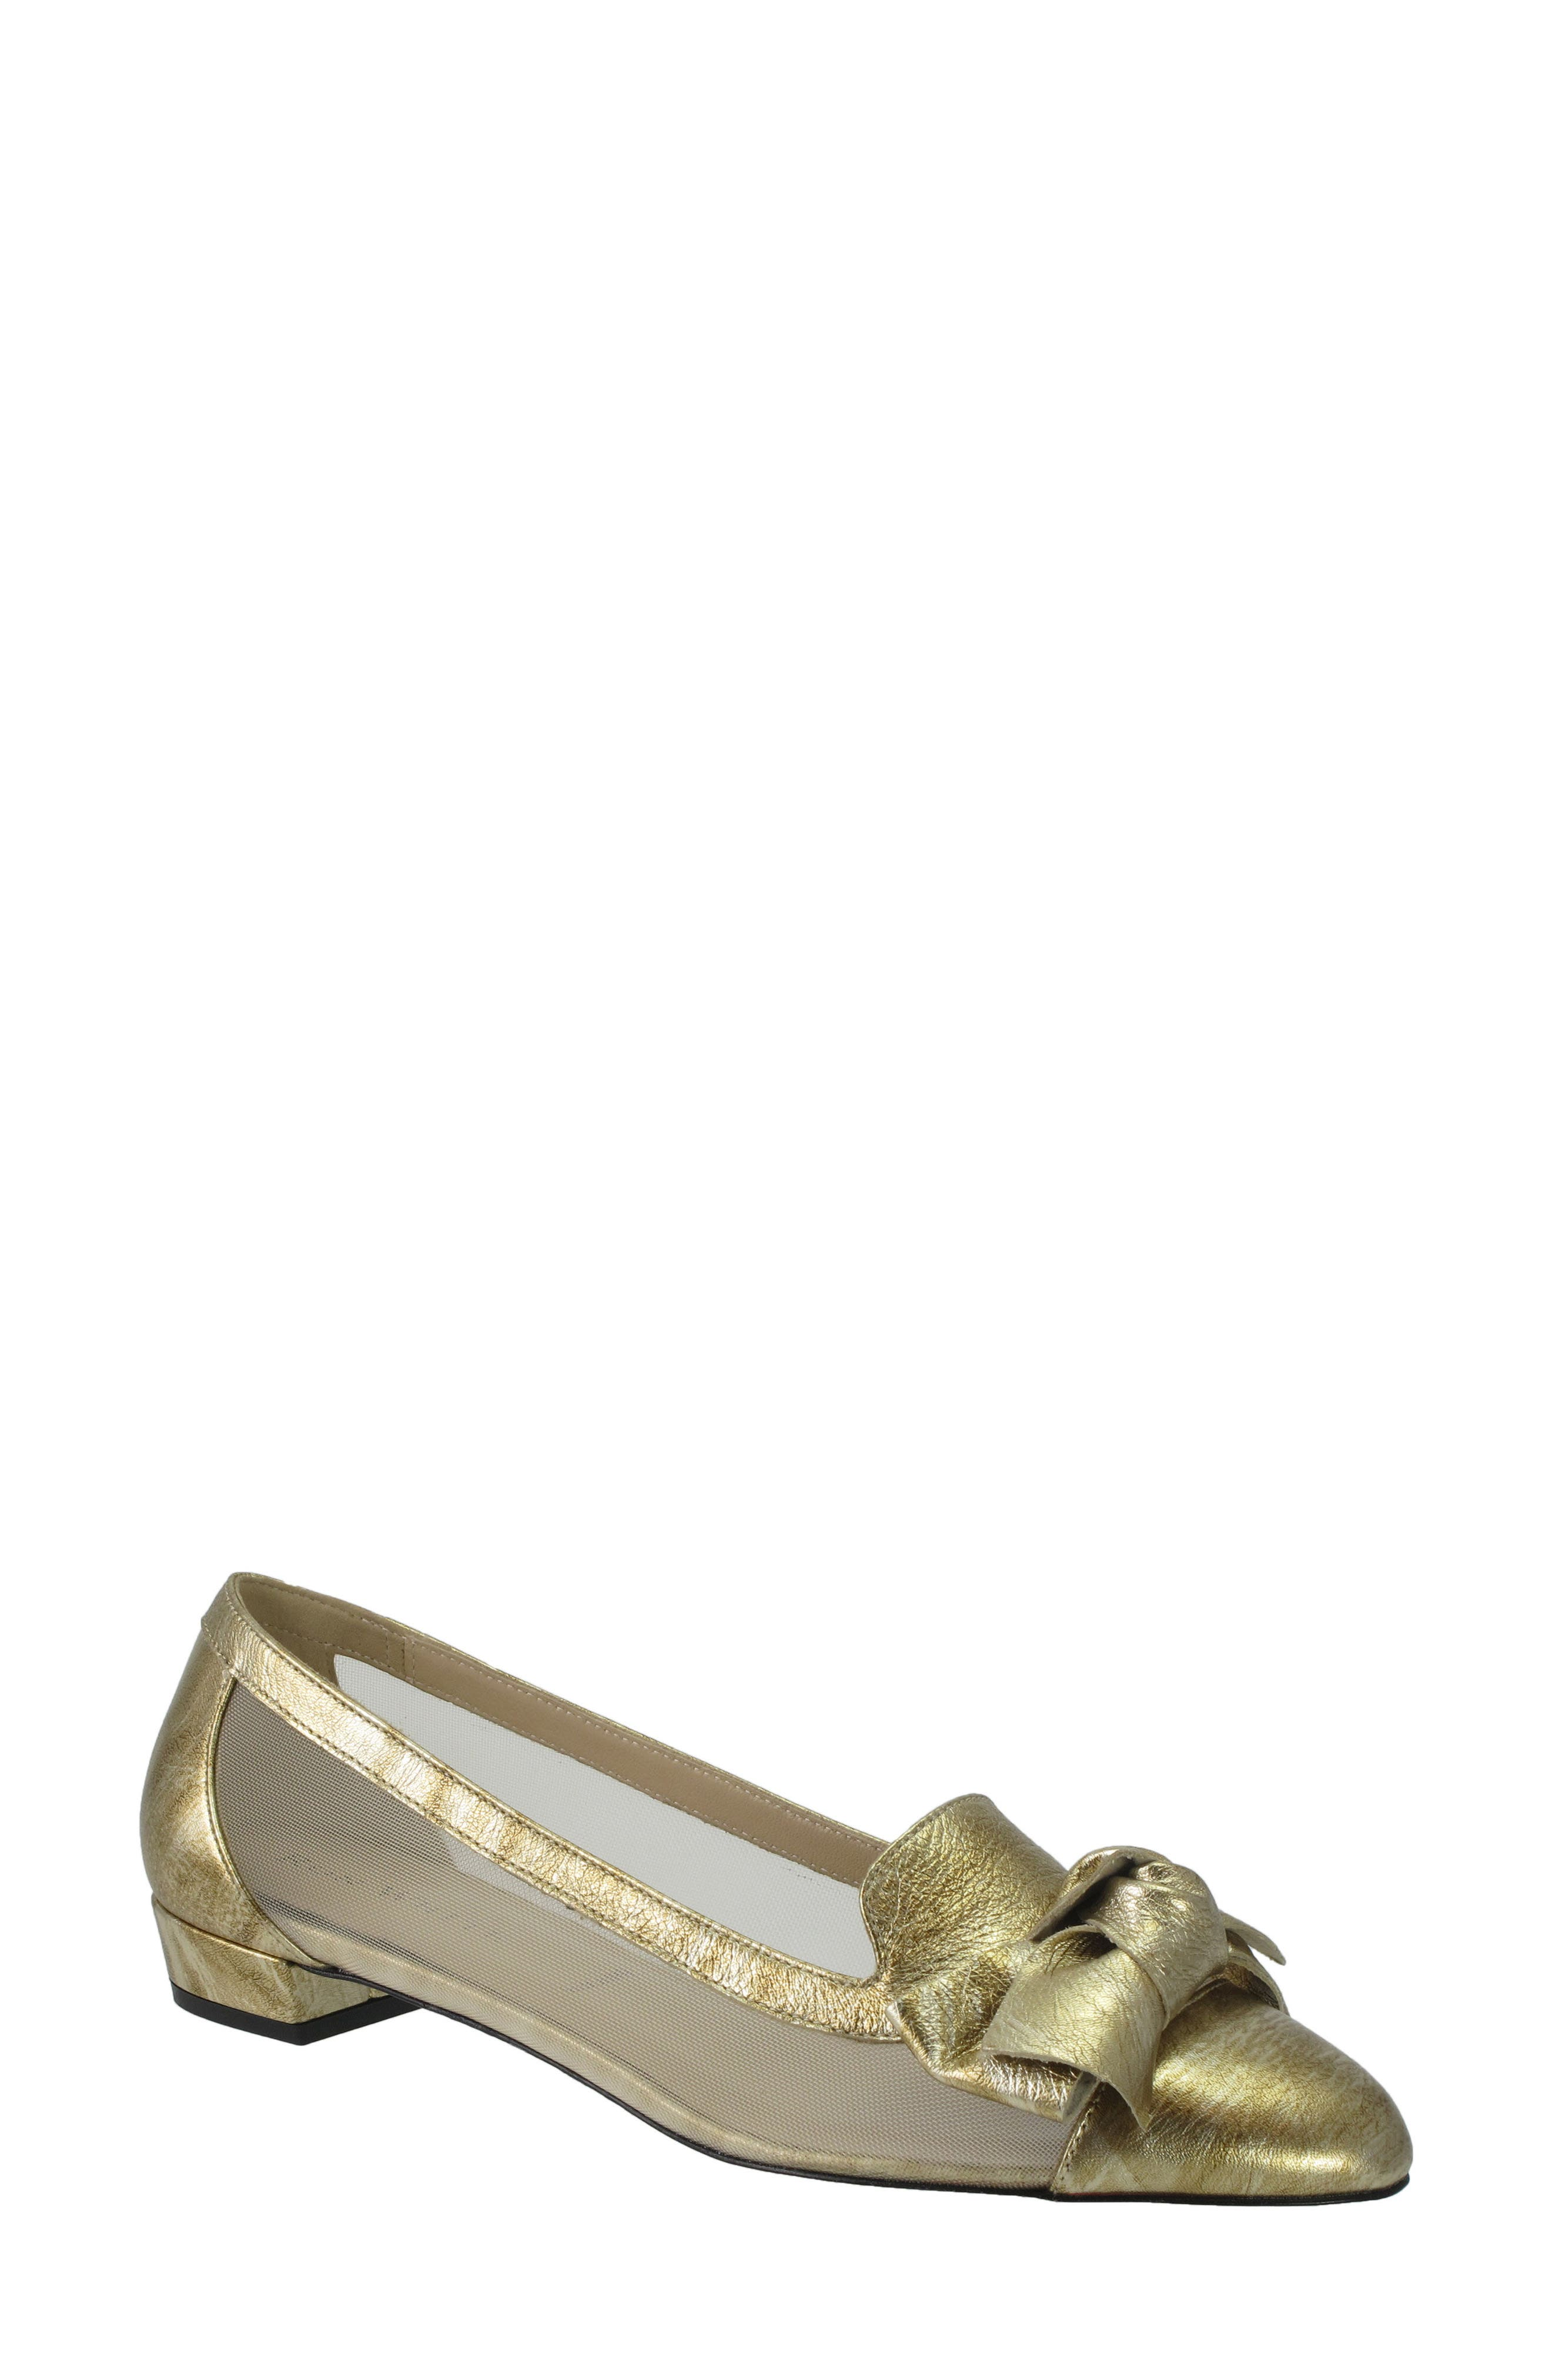 Hetti Bow Pump,                             Main thumbnail 1, color,                             ROSE GOLD LEATHER